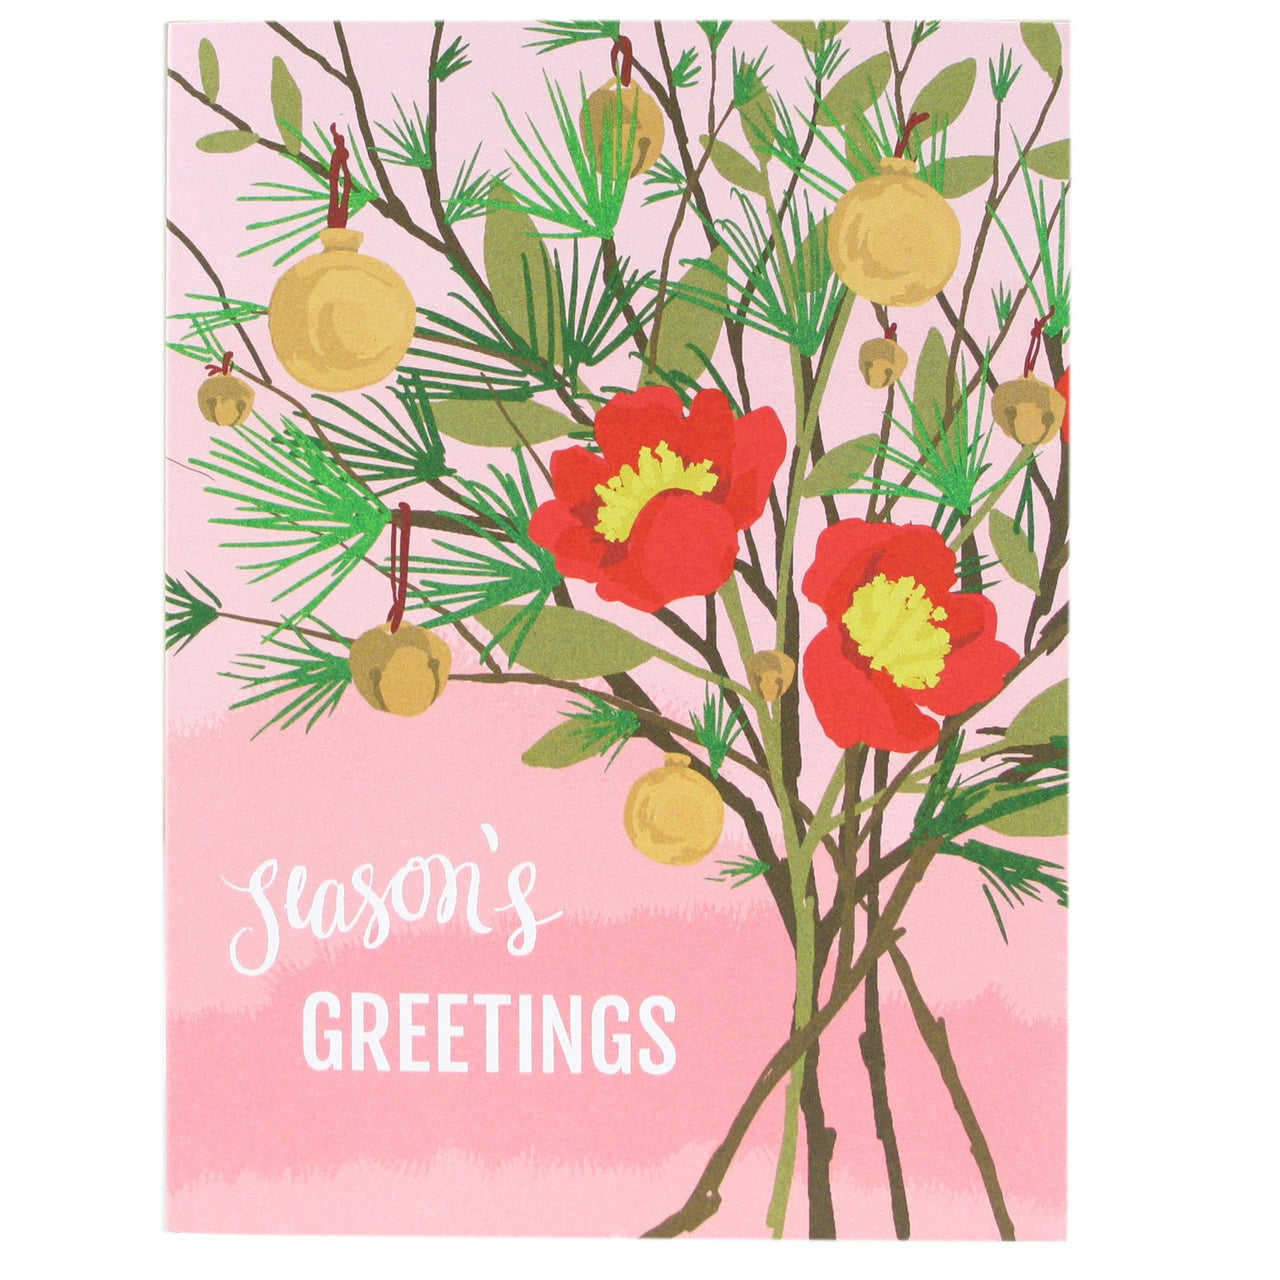 Pine Branches Floral Holiday Card